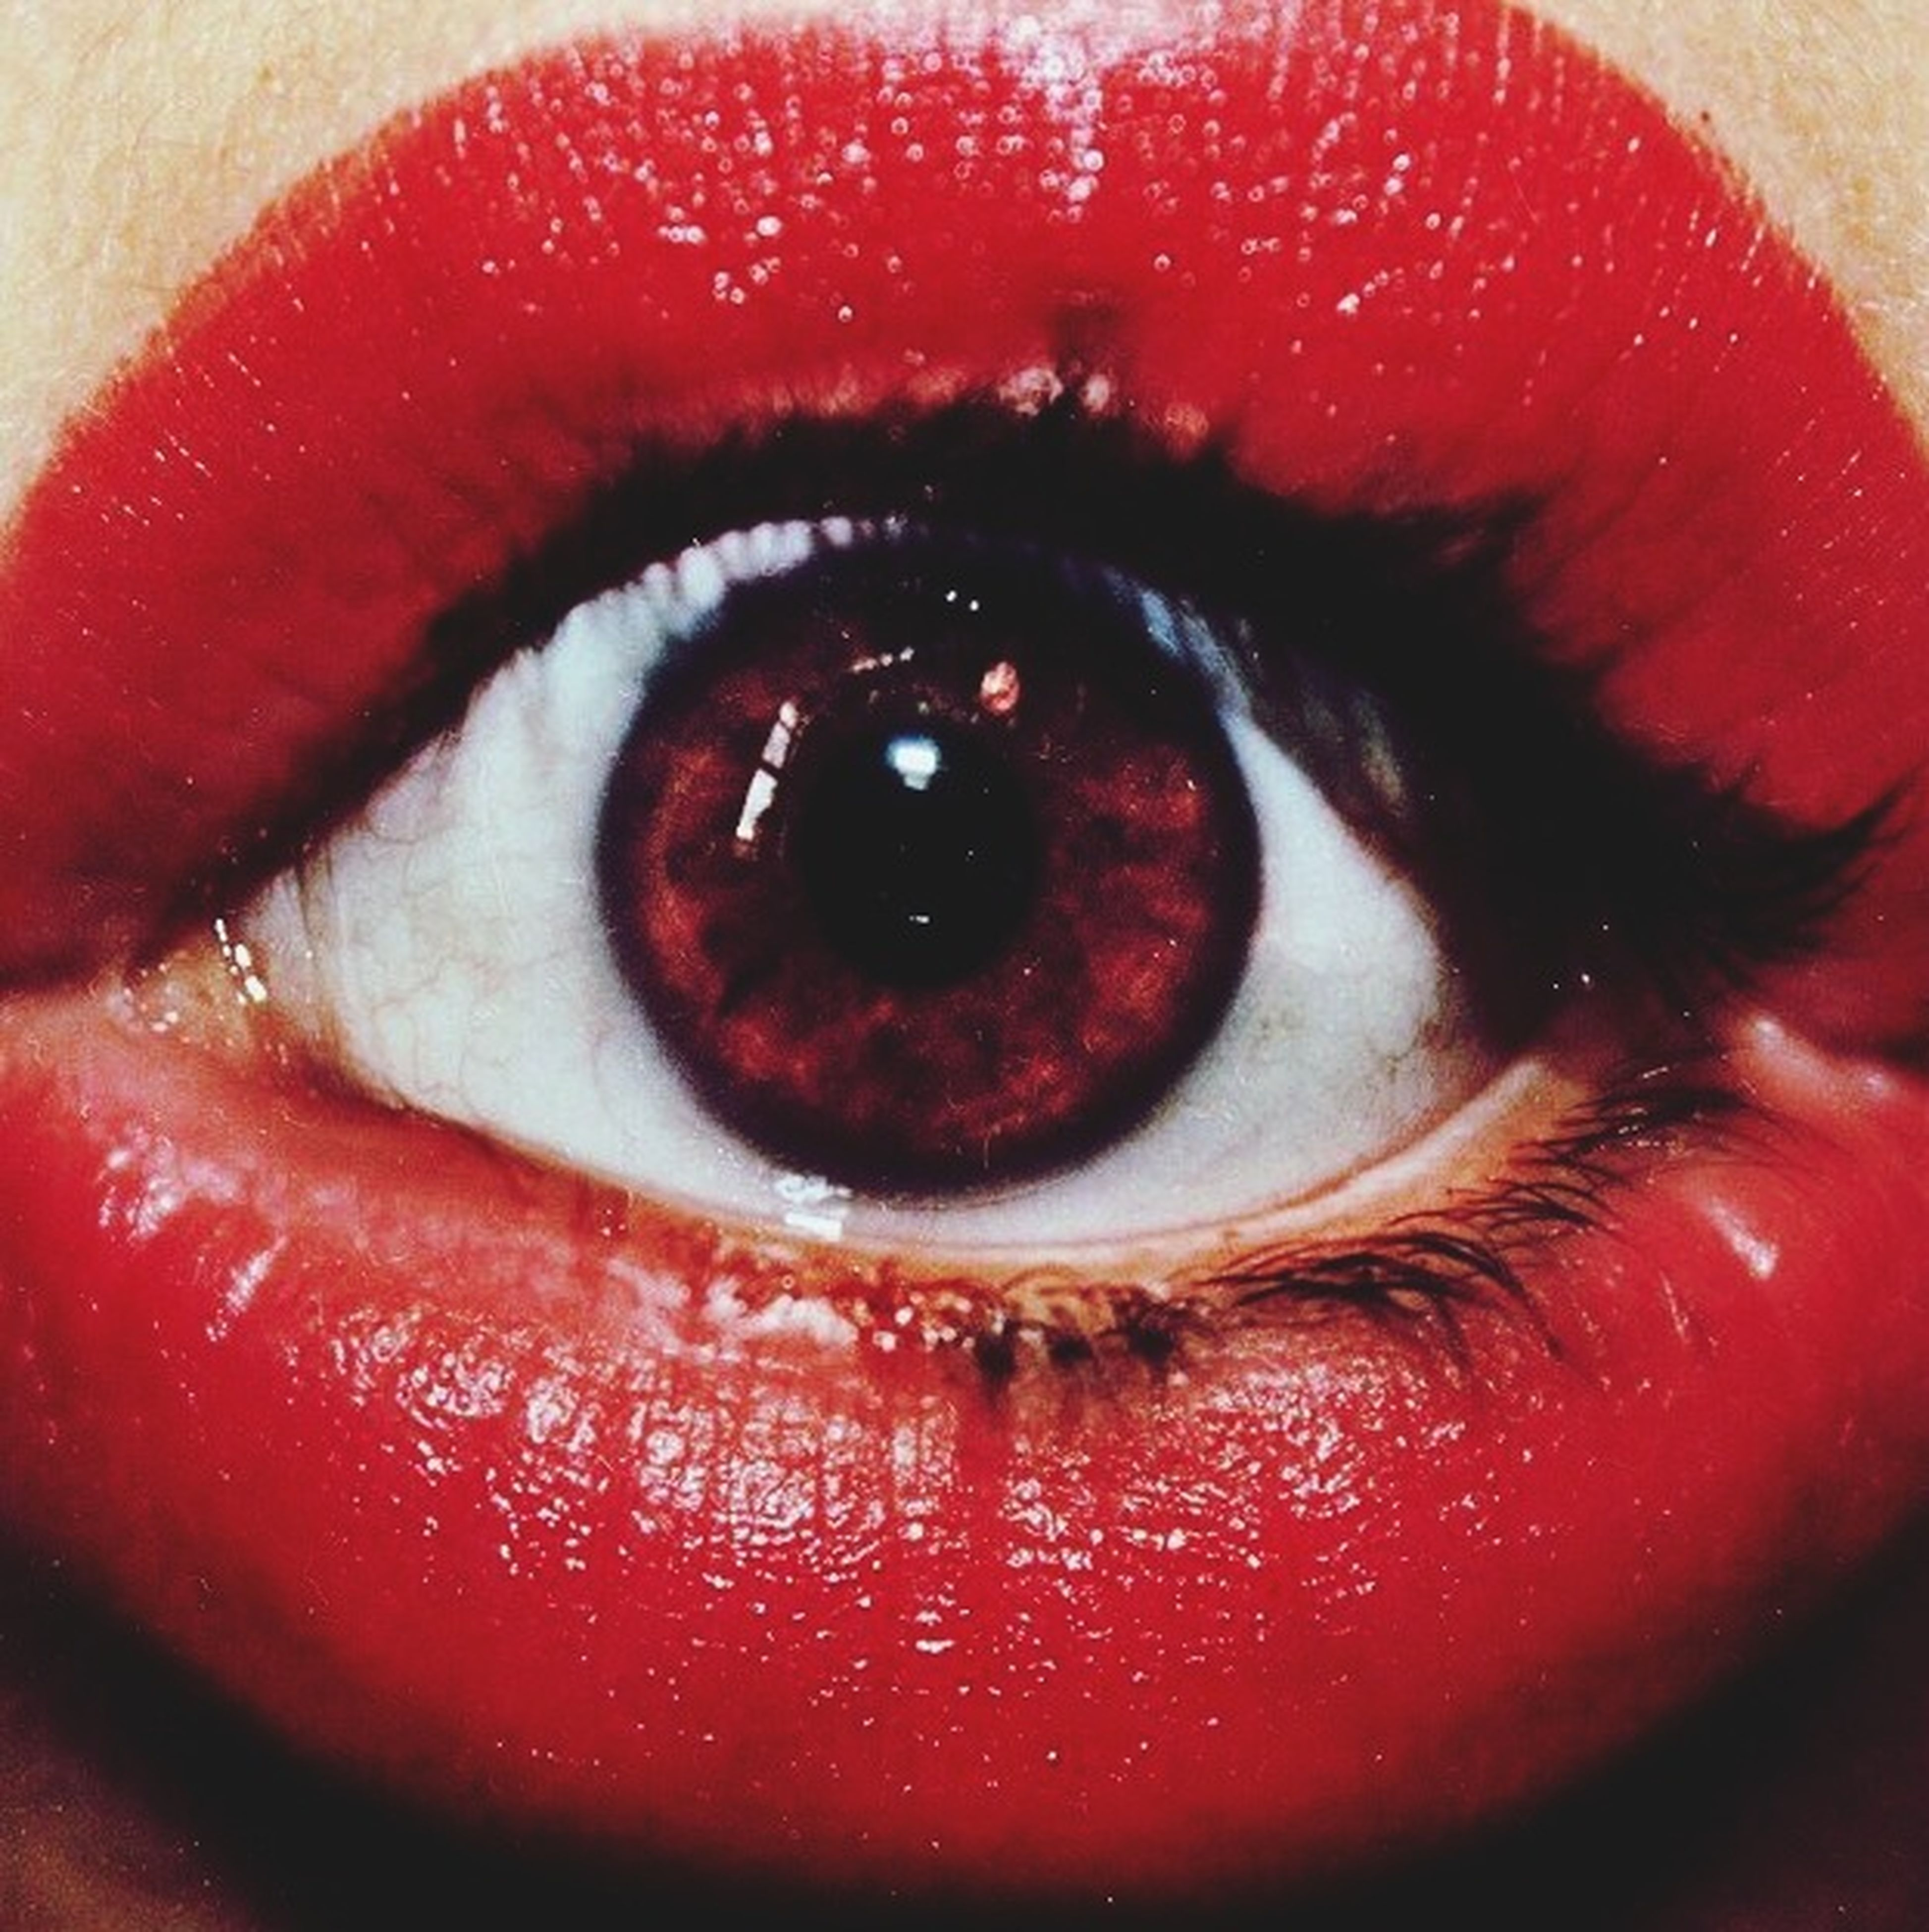 red, close-up, indoors, human eye, eyelash, part of, portrait, extreme close up, extreme close-up, looking at camera, lifestyles, unrecognizable person, human face, person, eyesight, eyeball, cropped